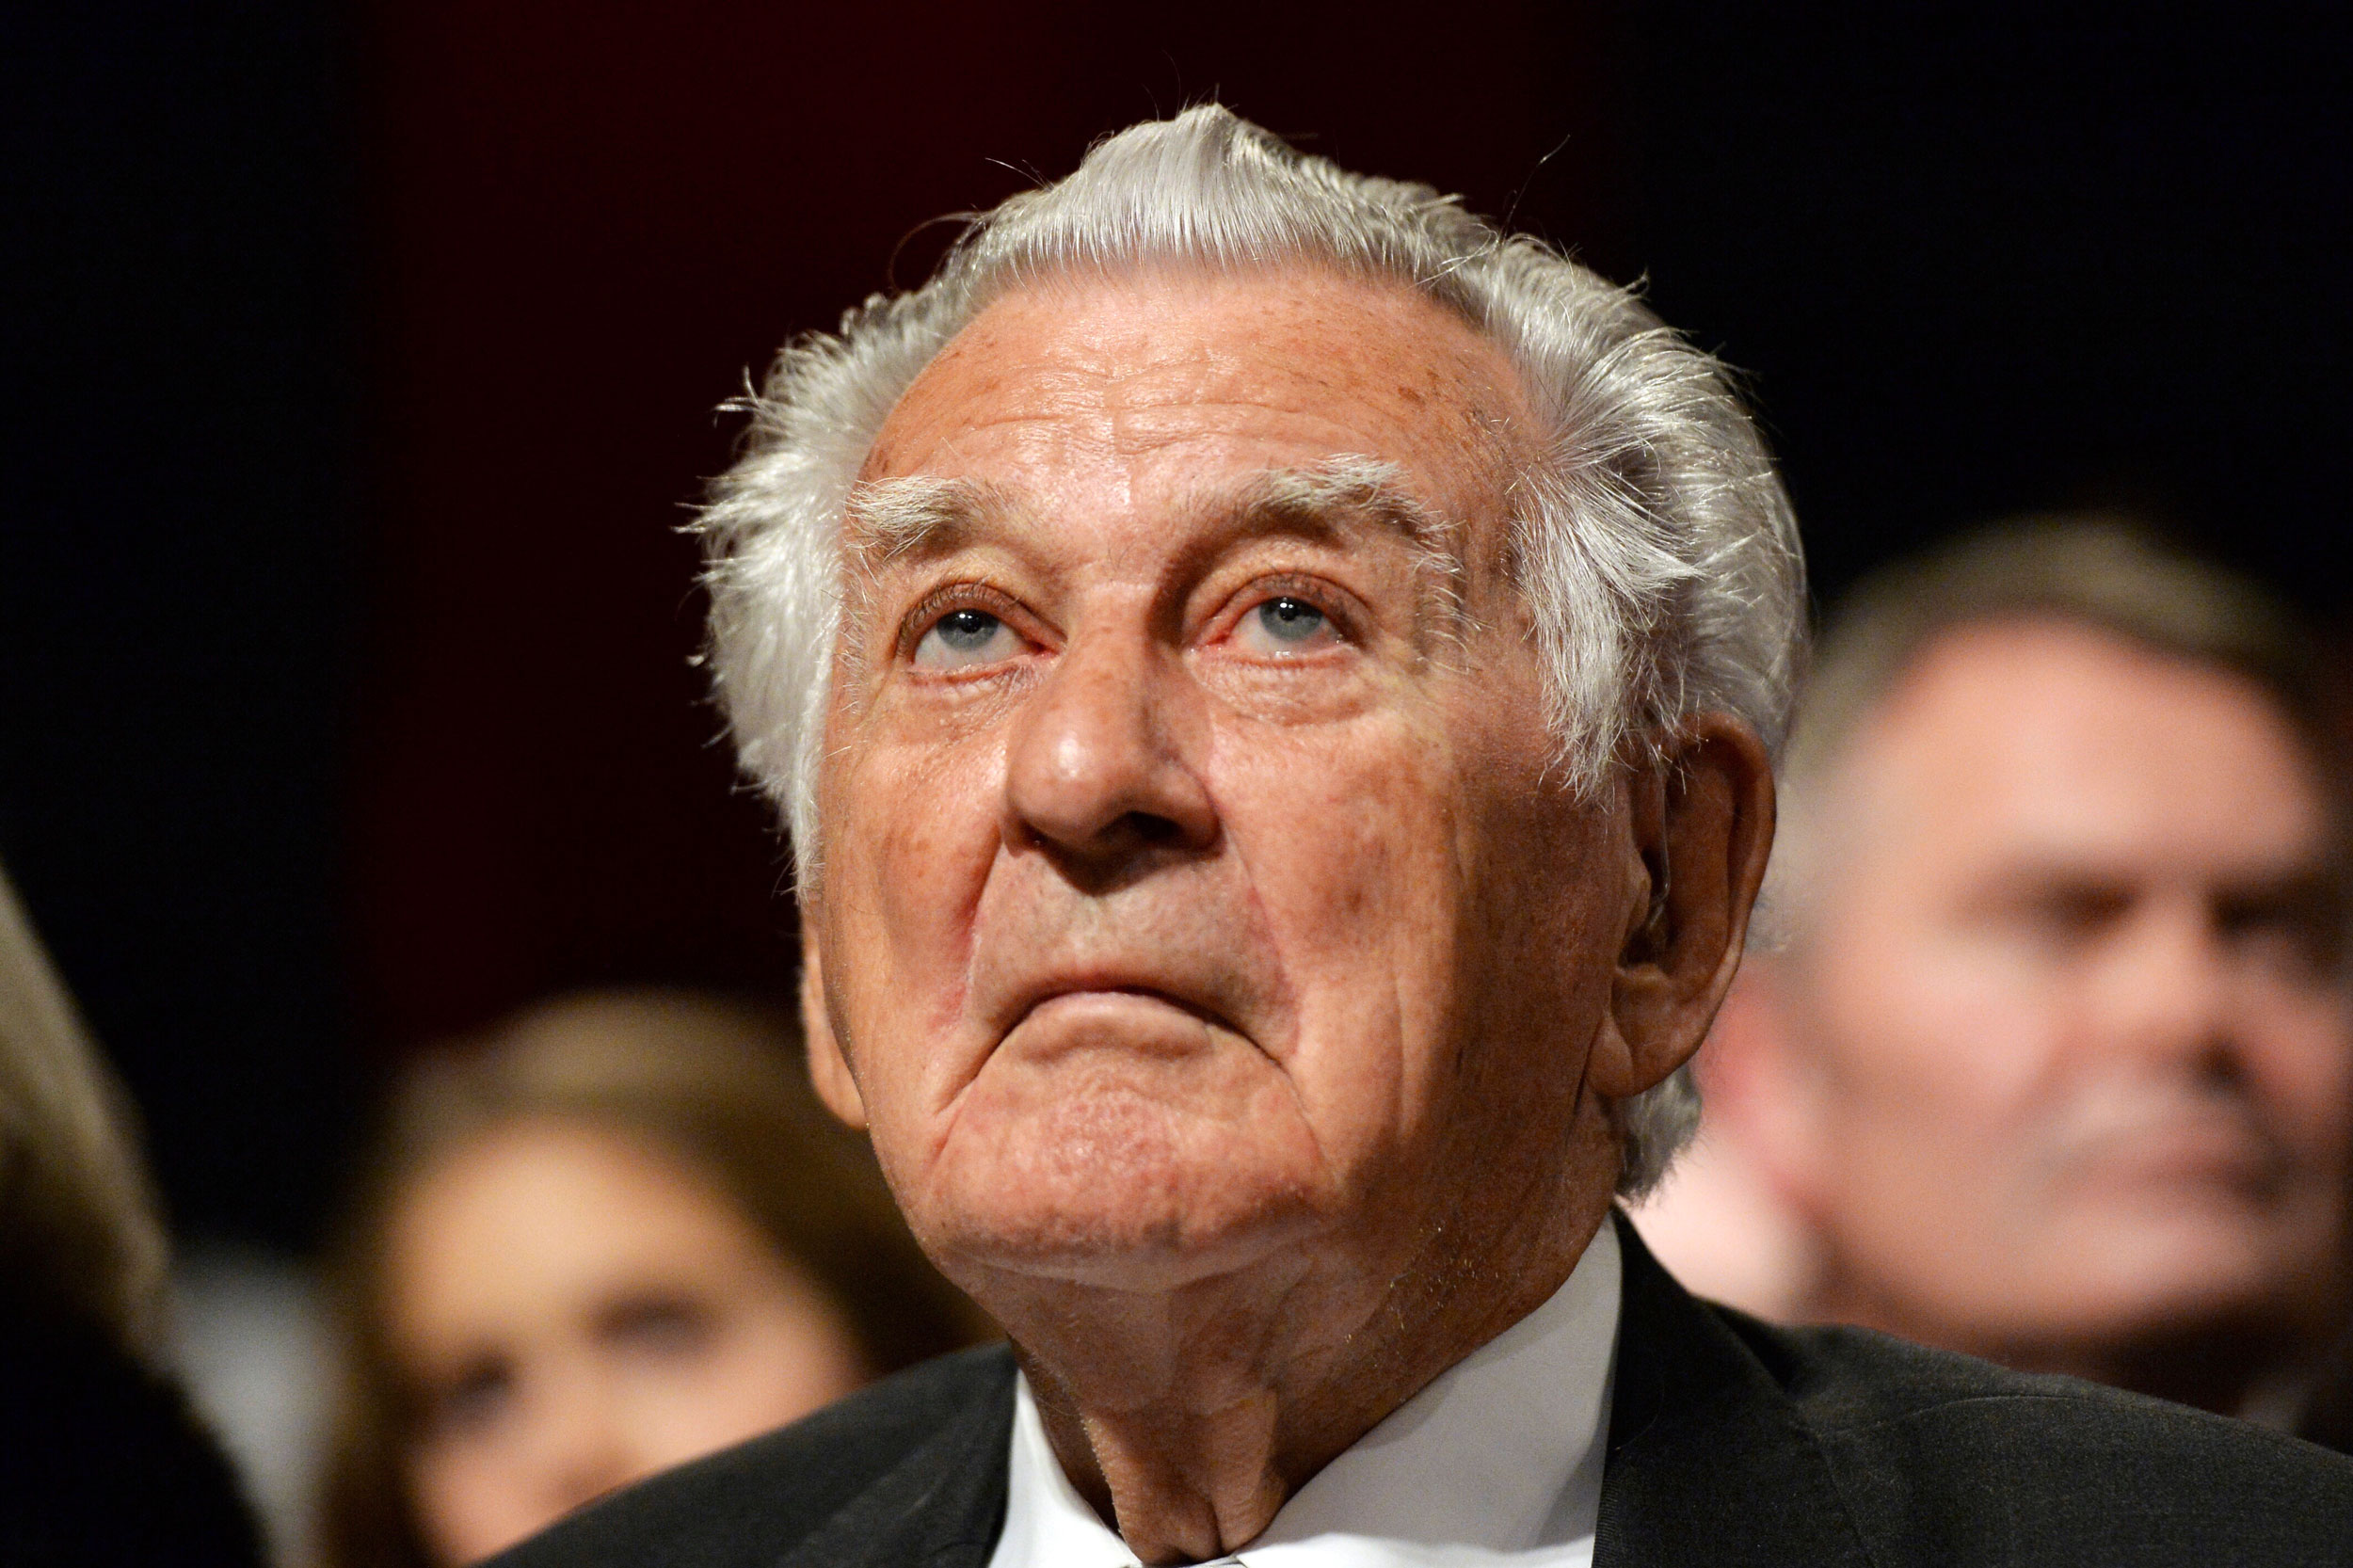 Australia former Prime Minister Bob Hawke listens during a campaign launch in Sydney on June 19, 2016.